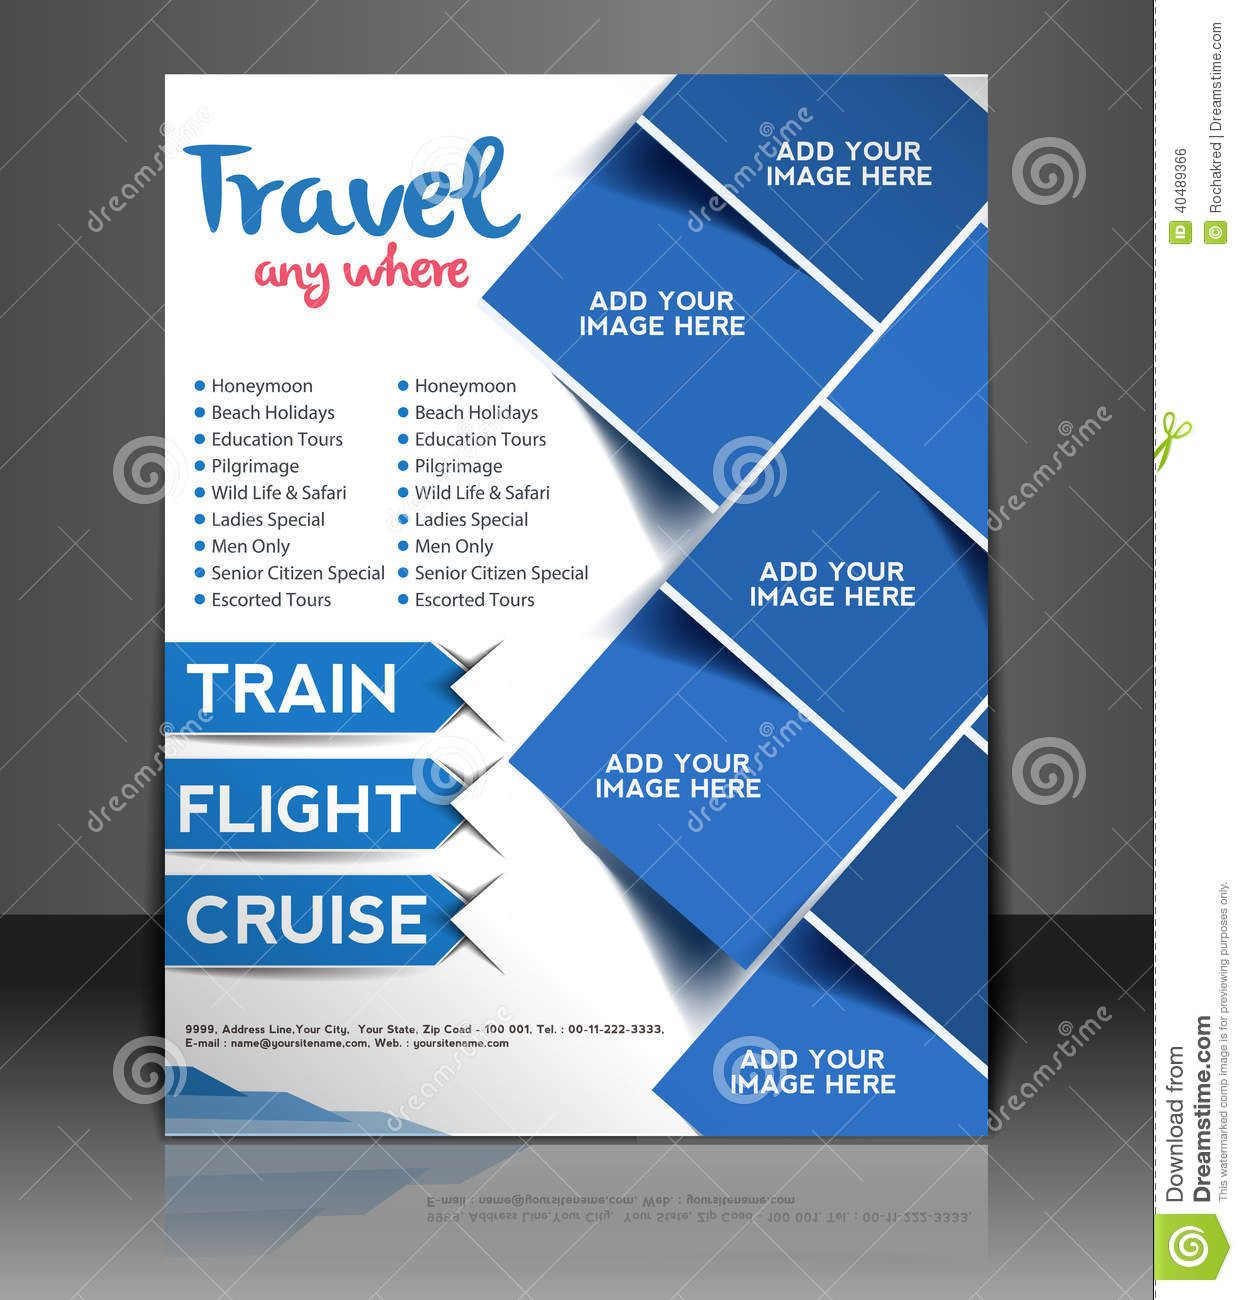 flyer design photos et images de stock shutterstock template vector travel center brochure flyer magazine cover poster template stock vector from the largest library of royalty images only at shutterstock